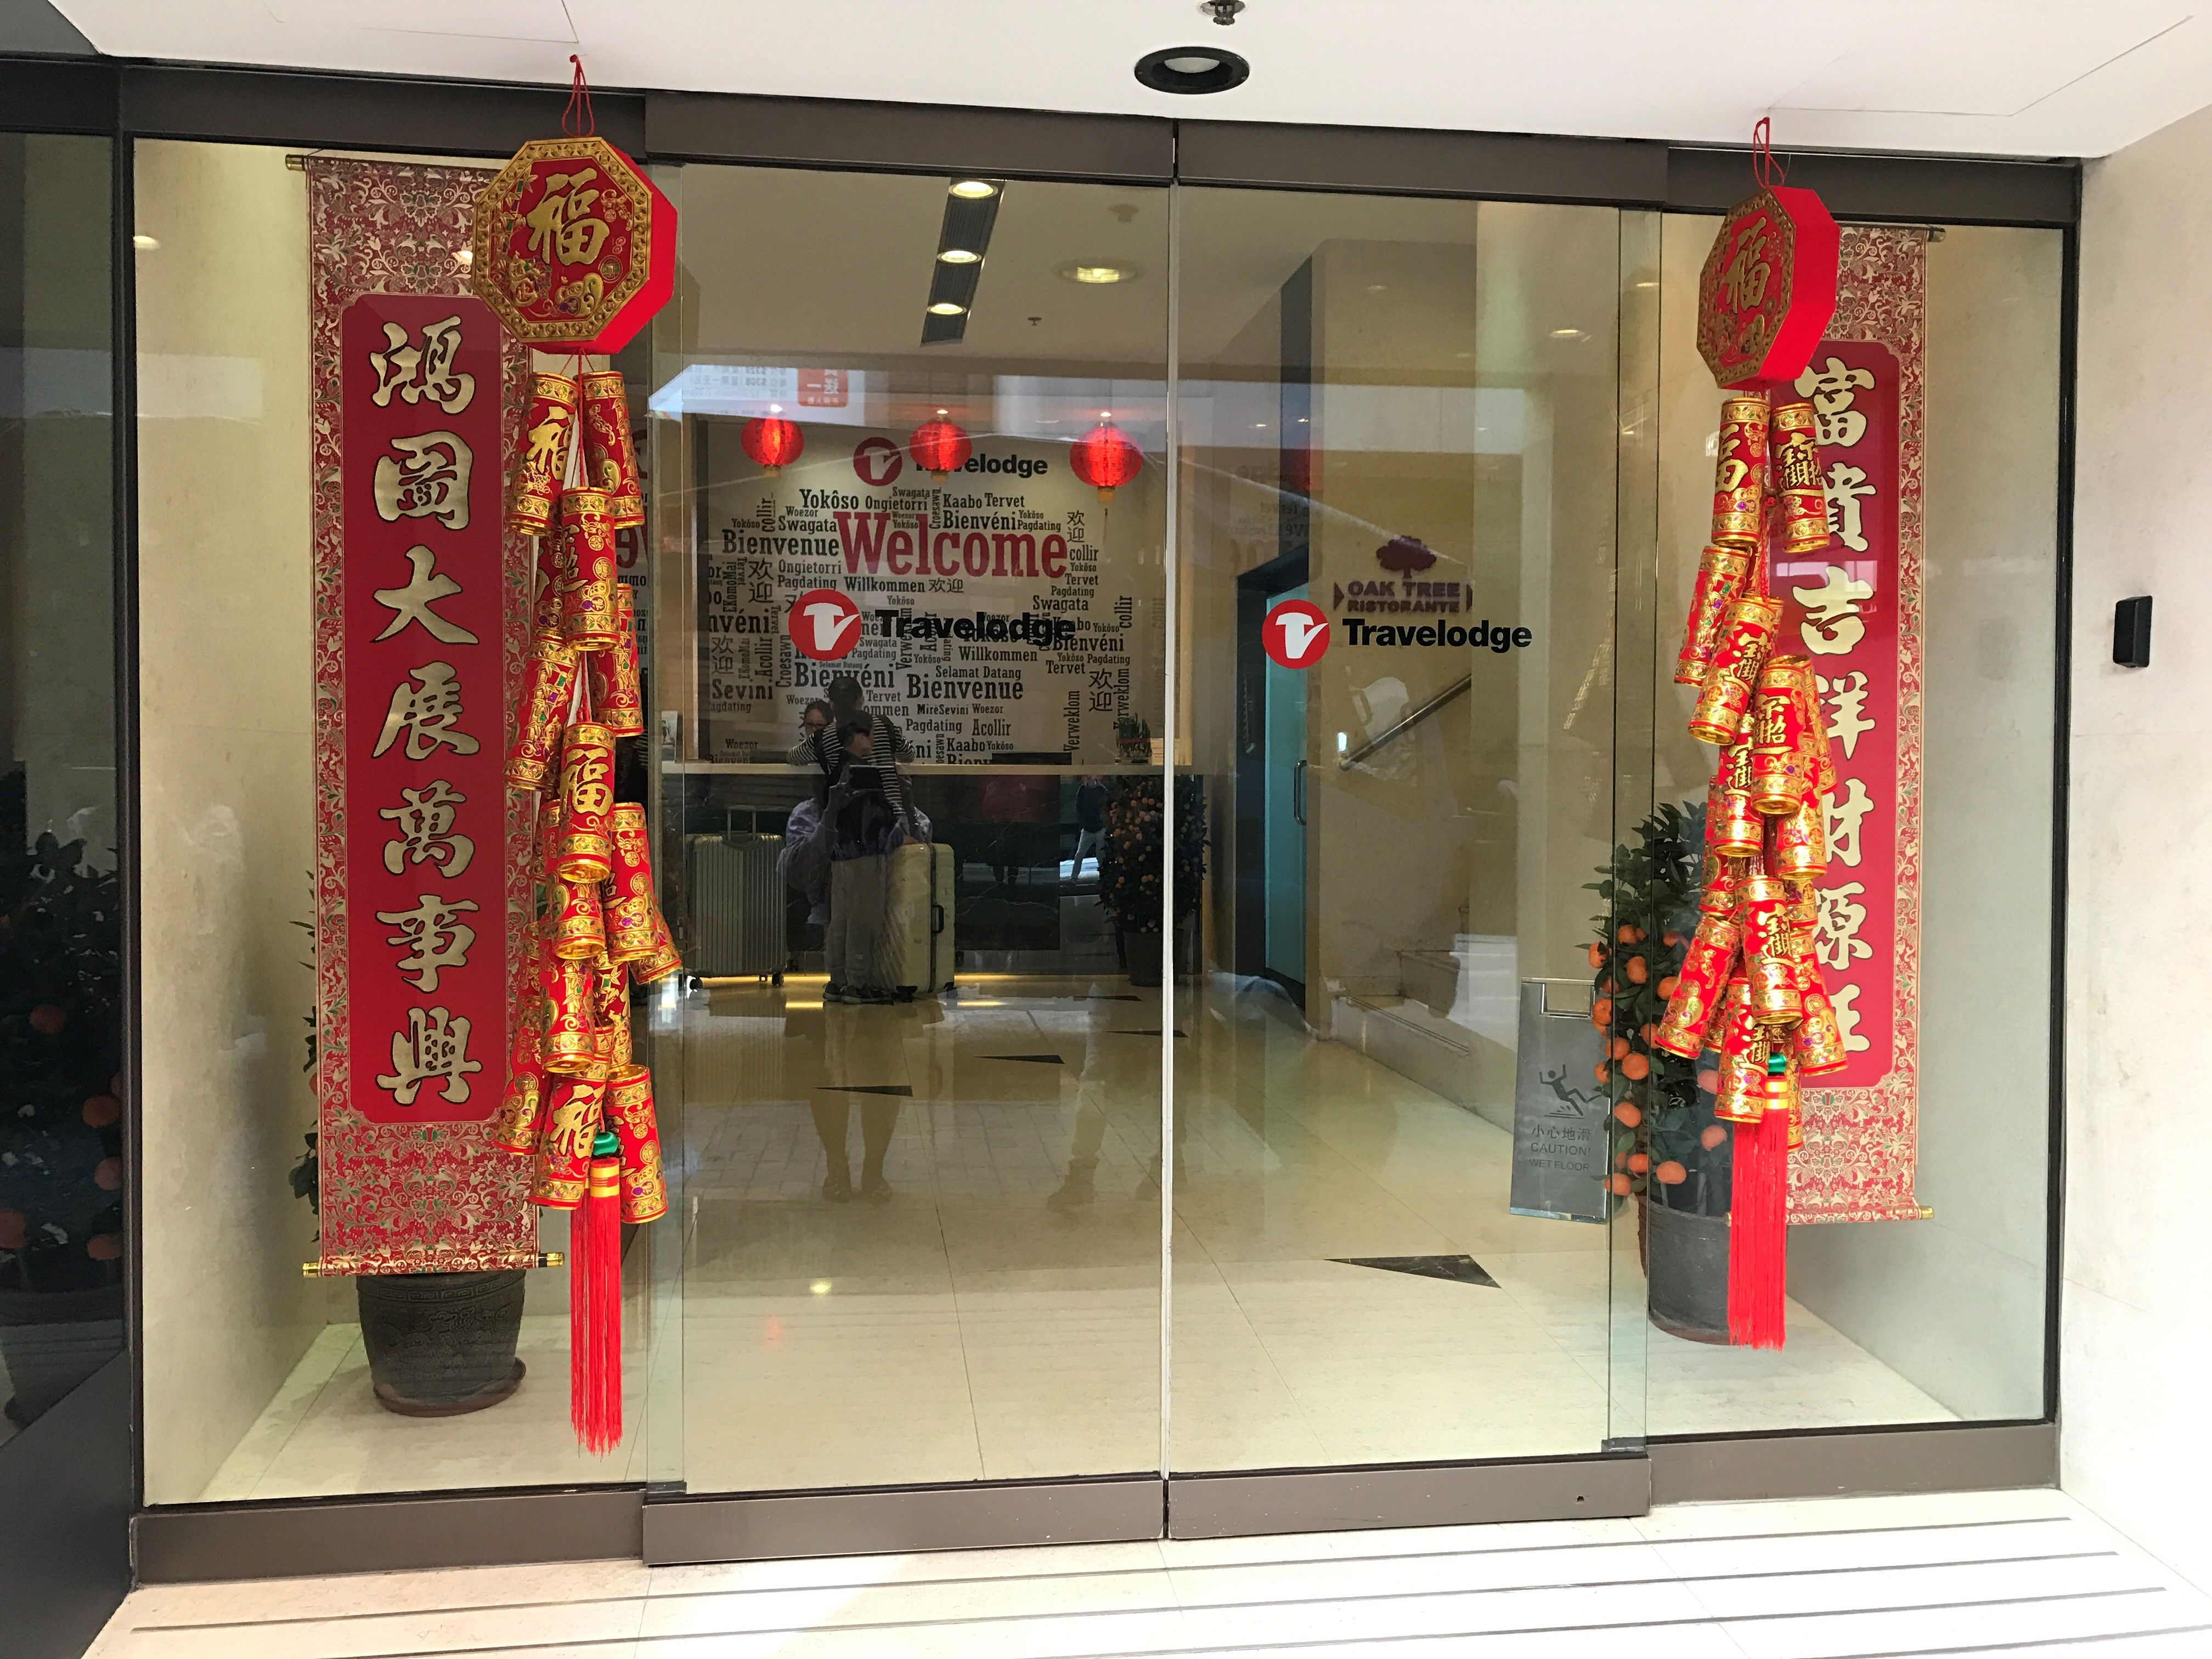 Lunar New Year is coming, we changed our outlook as well ...